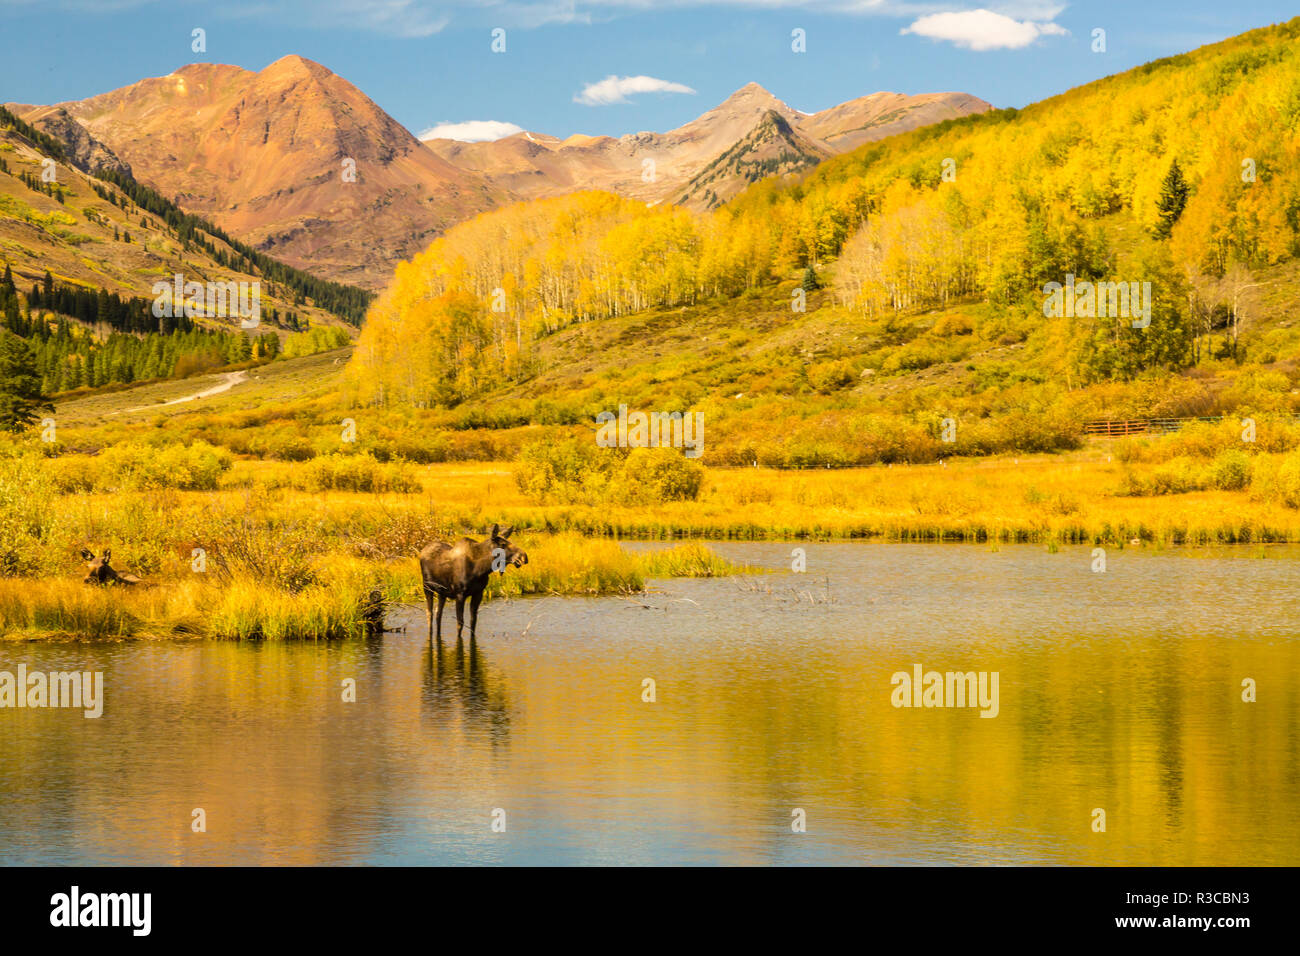 USA, Colorado, Gunnison National Forest. Moose in pond. - Stock Image